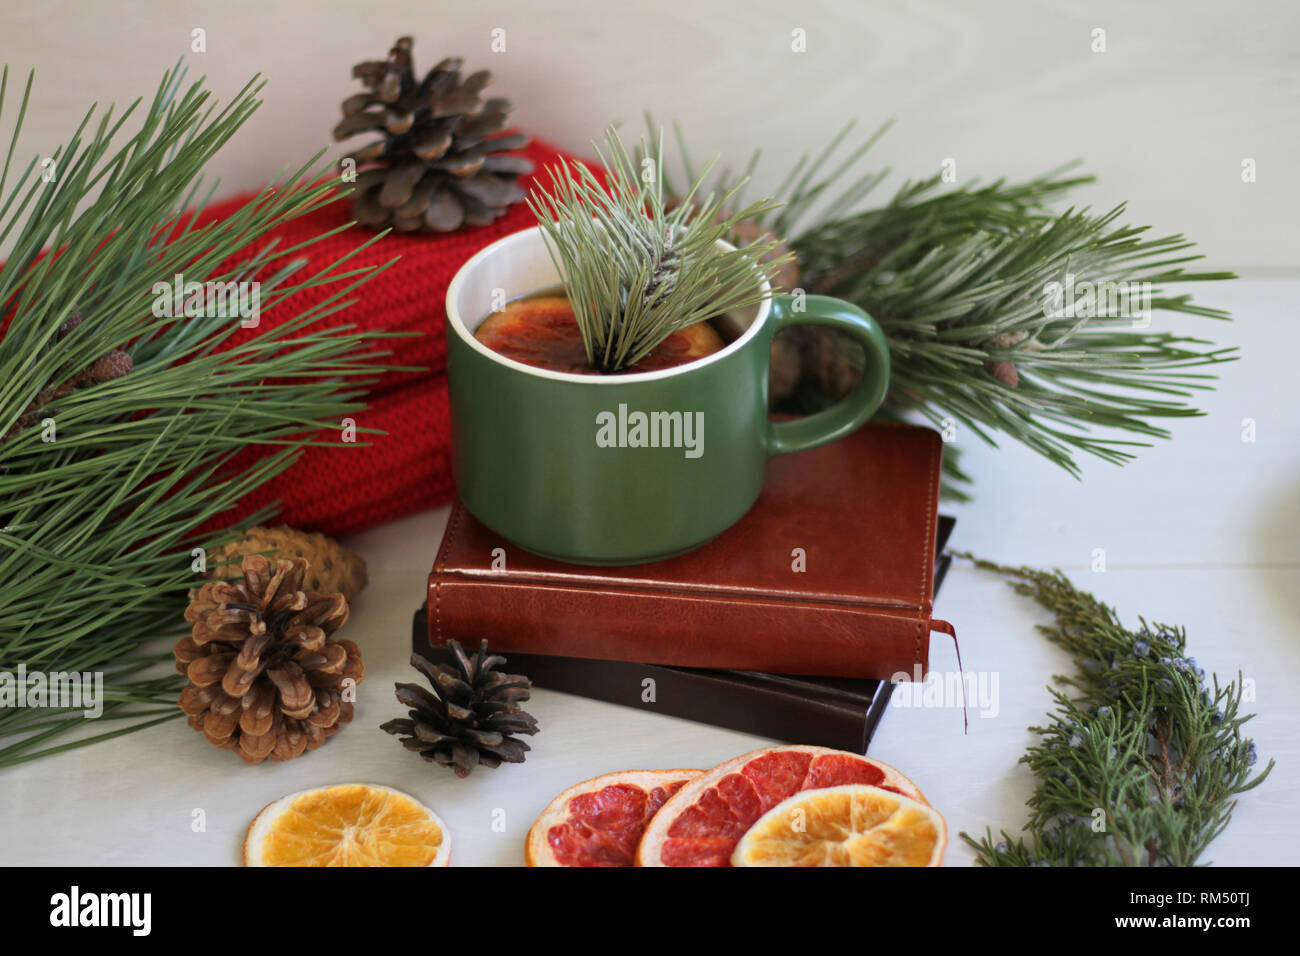 Warm composition on the table, a red scarf, dried oranges, heart-shaped cookies, a cup of hot tea with a slice of grapefruit and pine branches - Stock Image